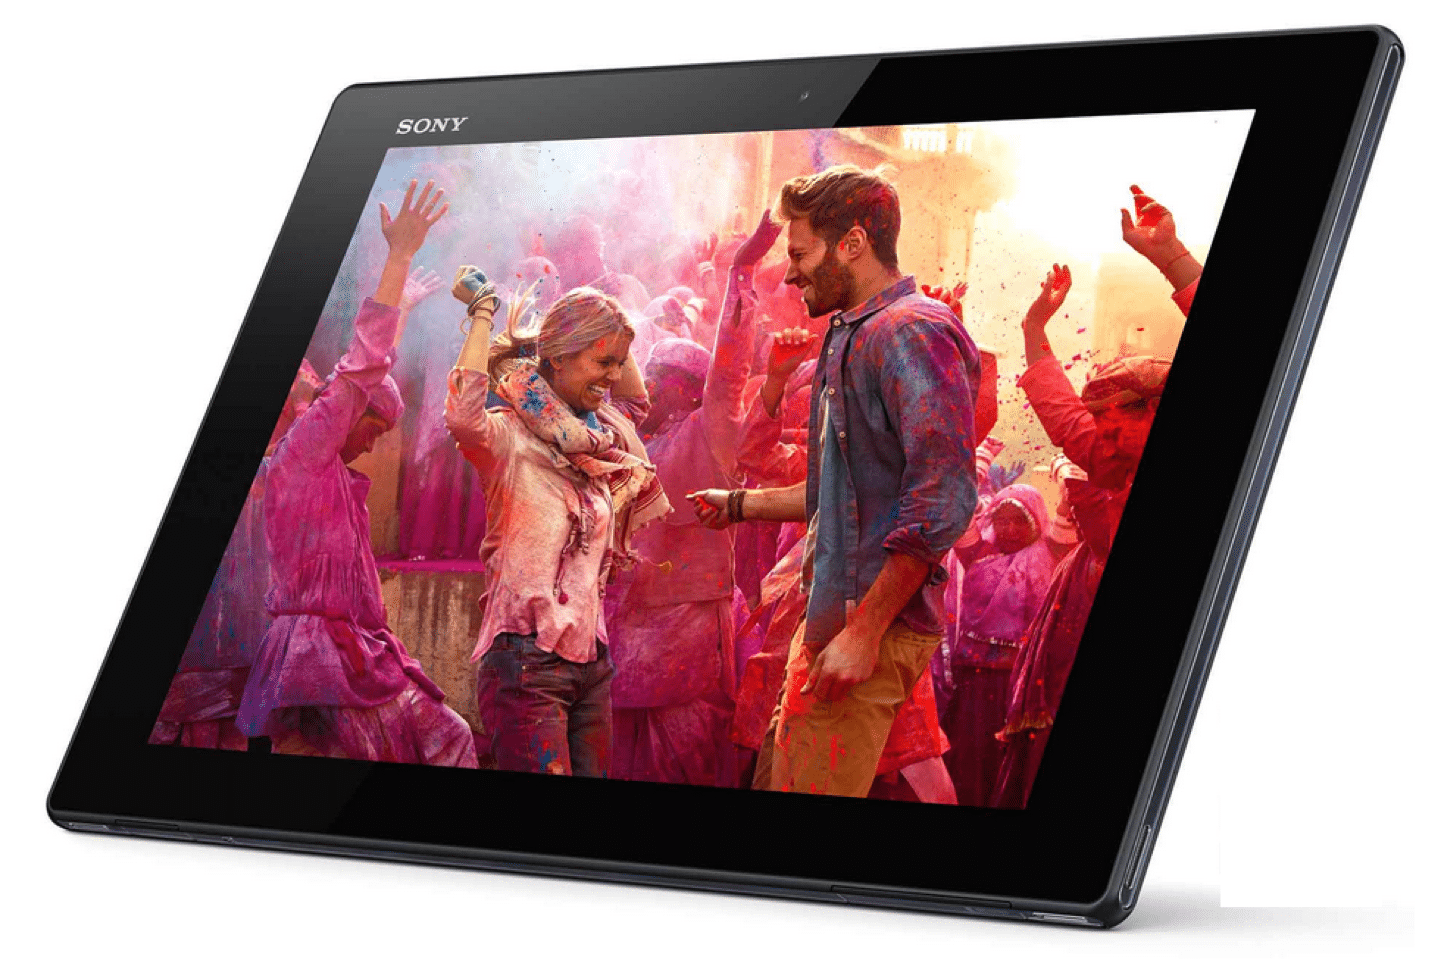 Sony's Waterproof Xperia Tablet Z